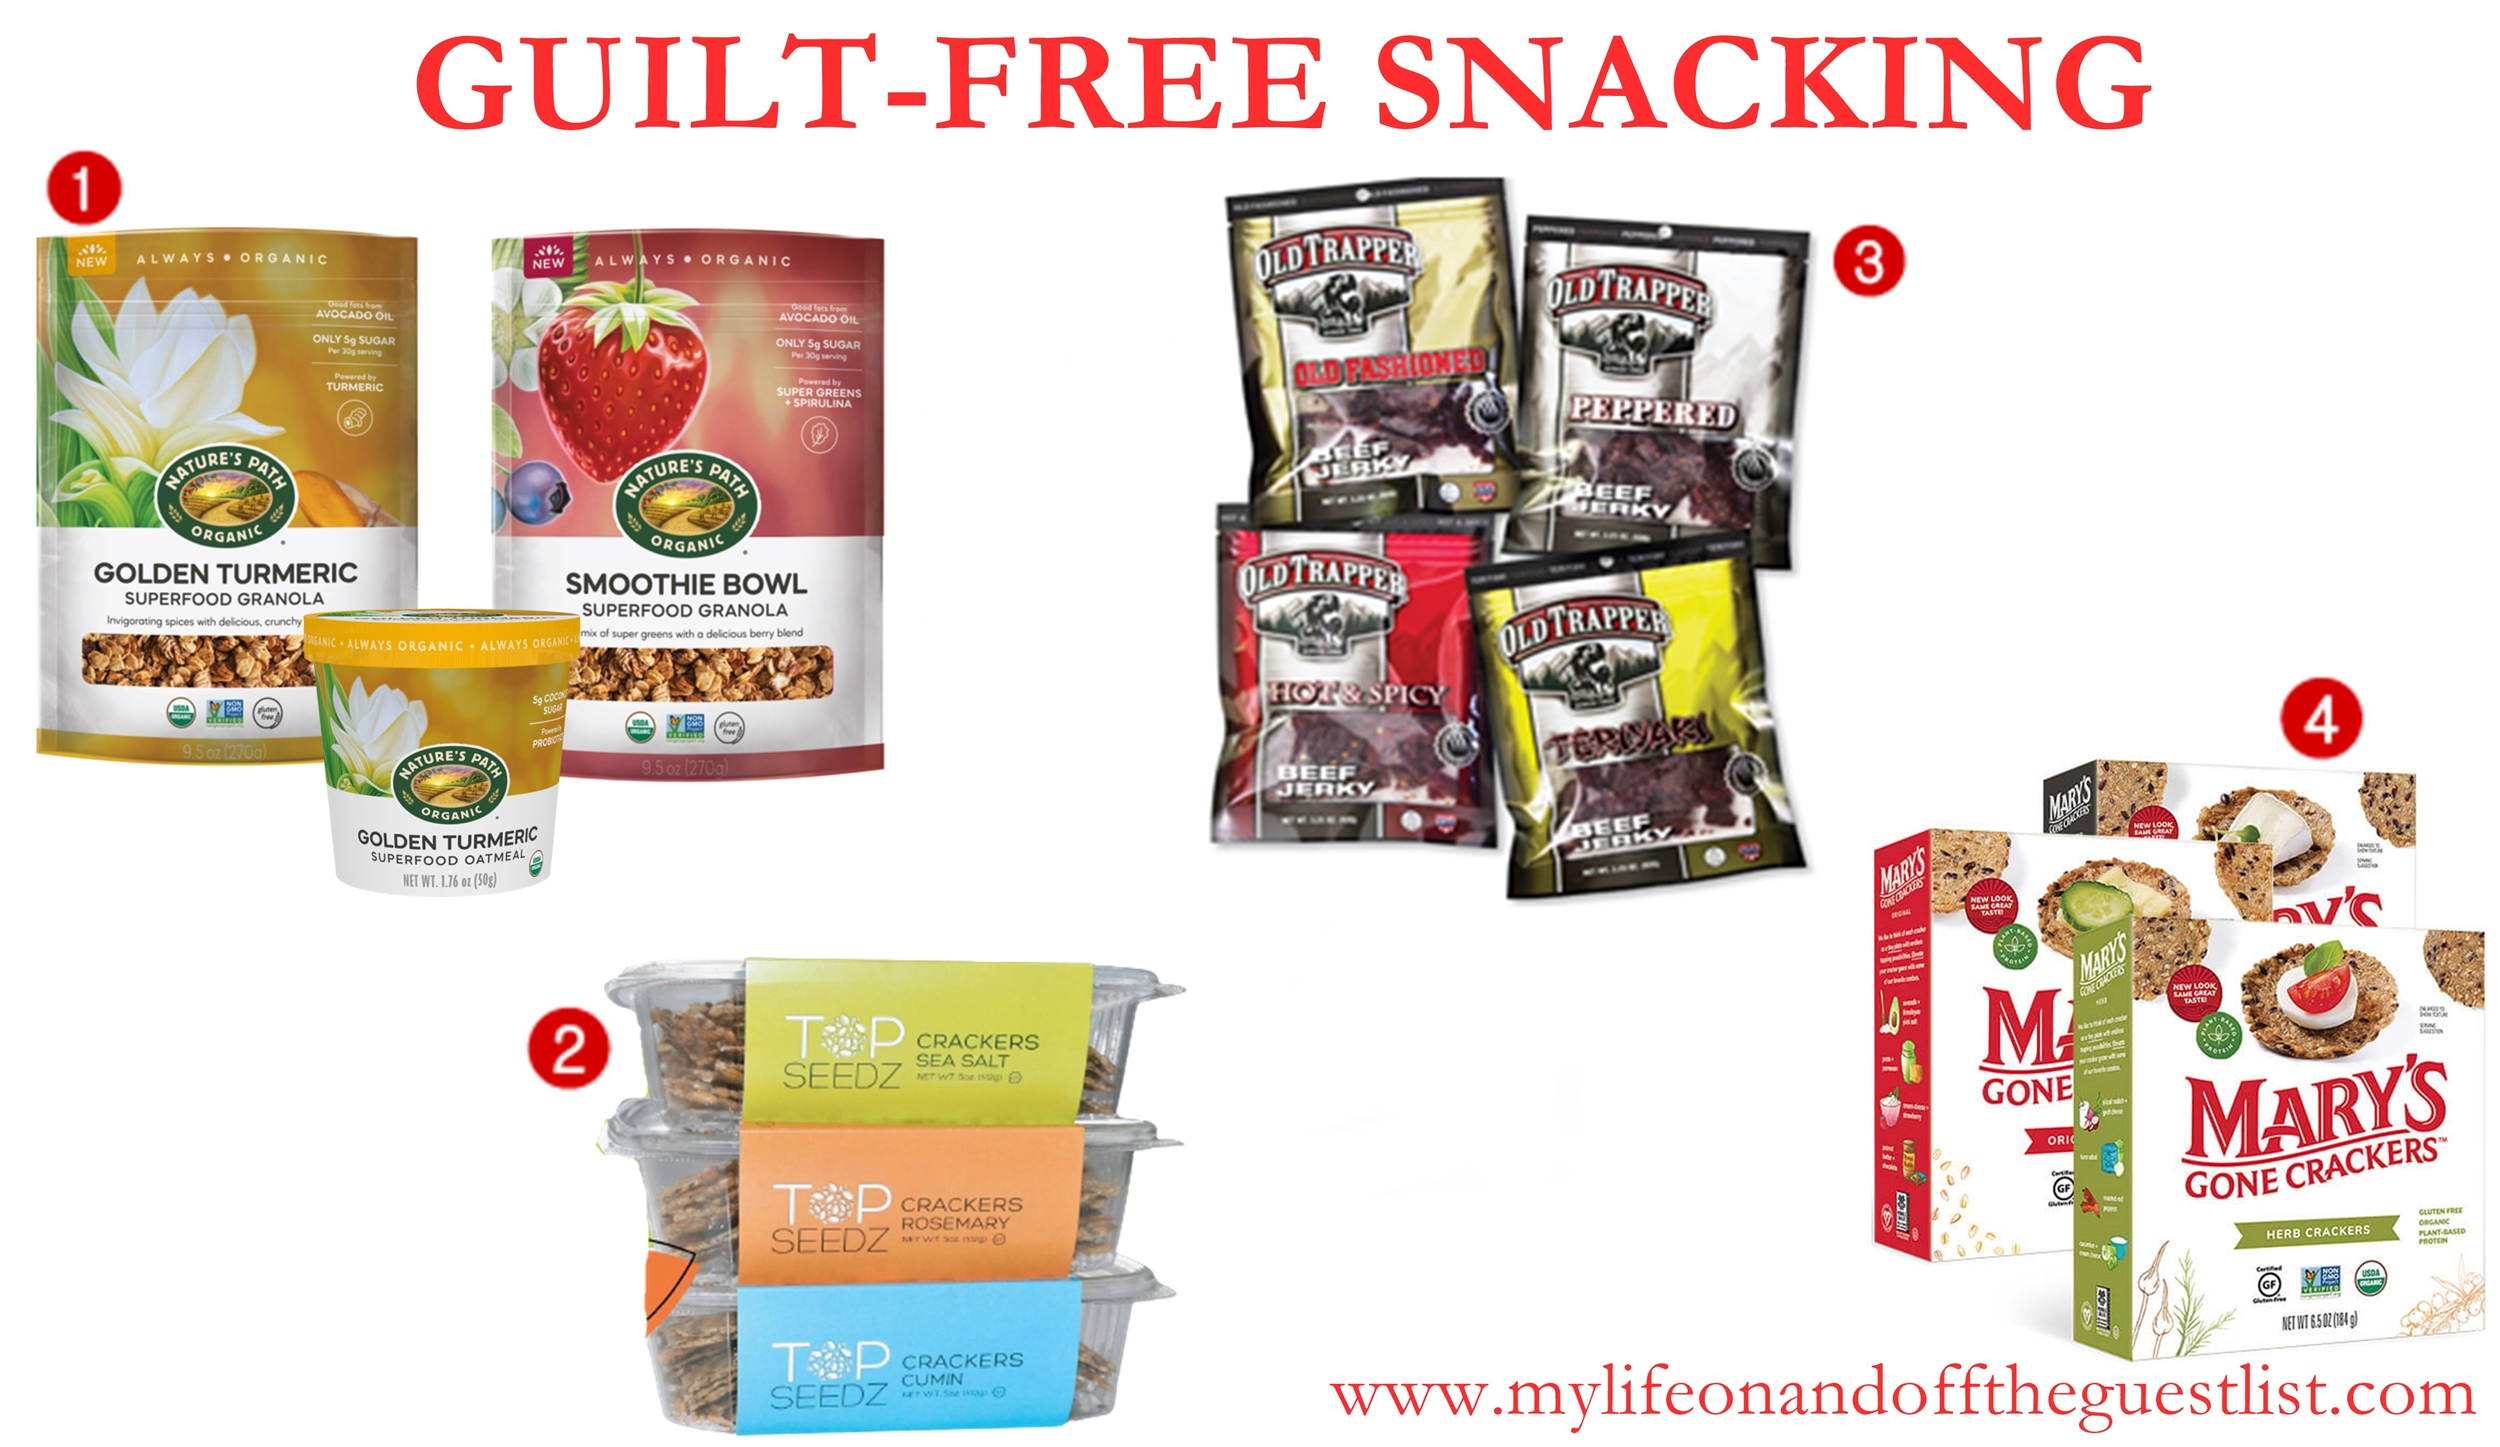 Guilt-Free Snacking: It's Okay to Overindulge on These Healthy Snacks